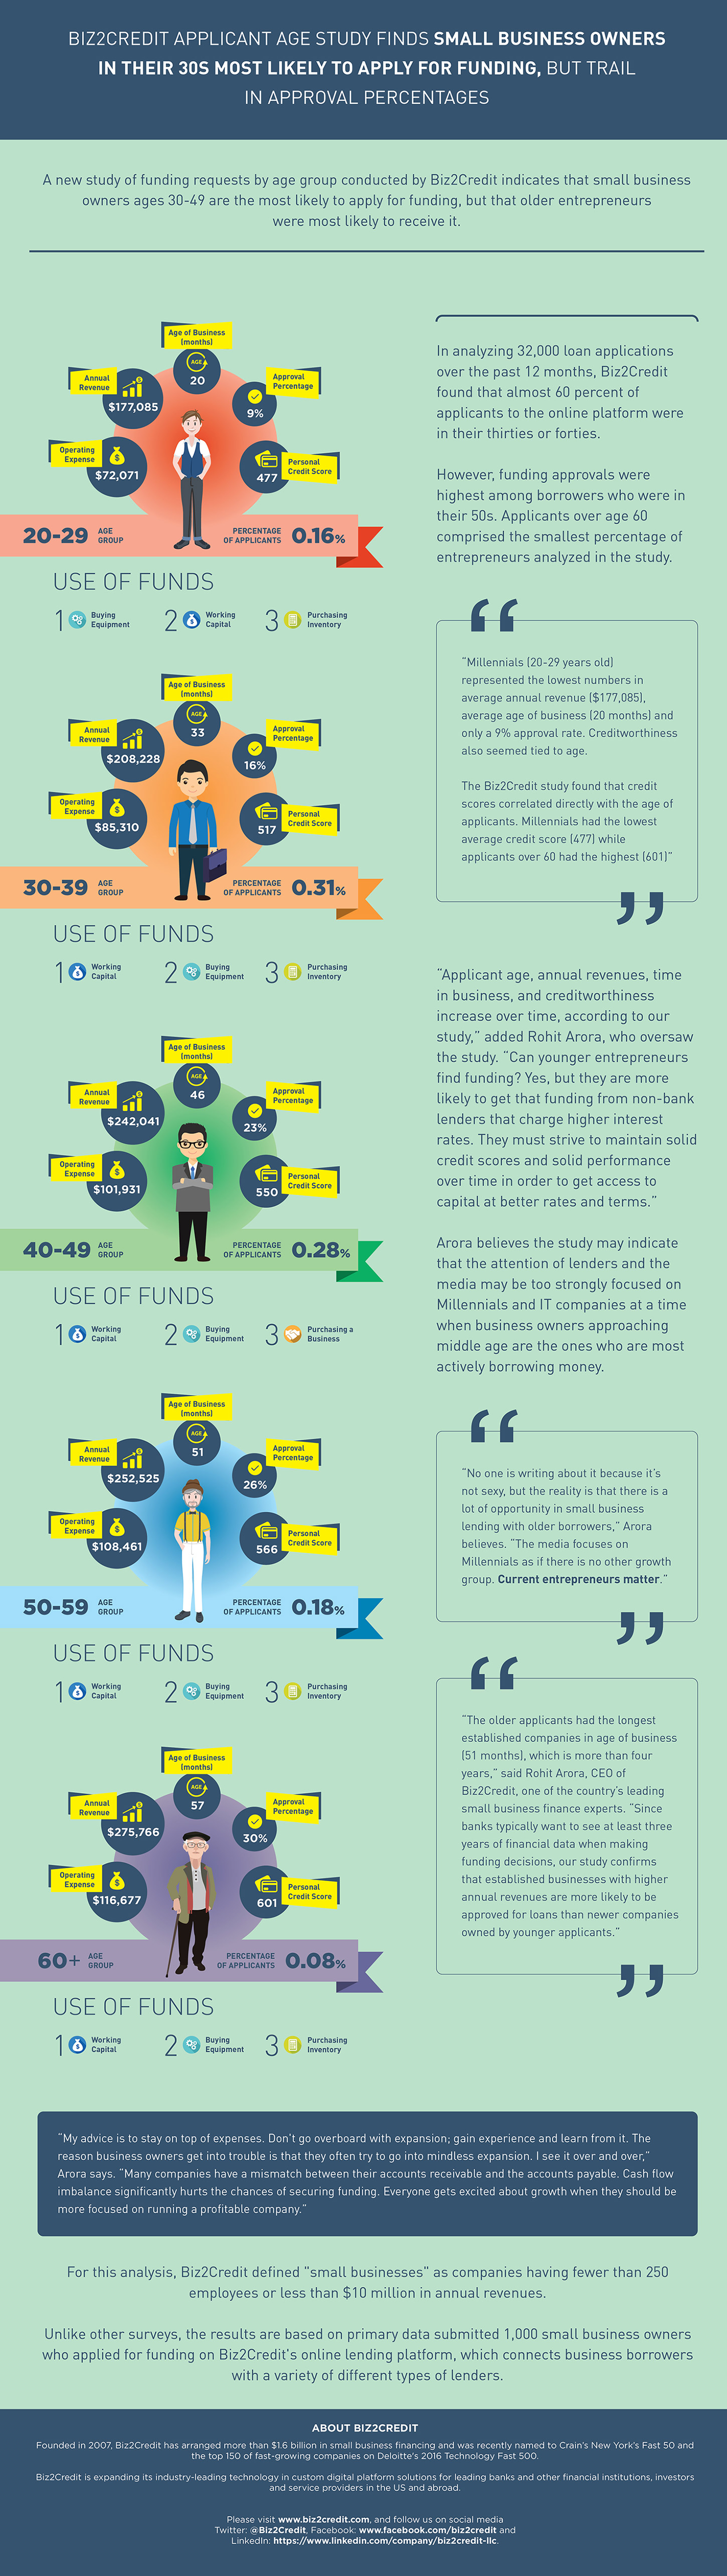 Infographic - Biz2Credit Applicant Age Study Finds Small Business Owners in Their 30s Most Likely to Apply for Funding, But Trail in Approval Percentages